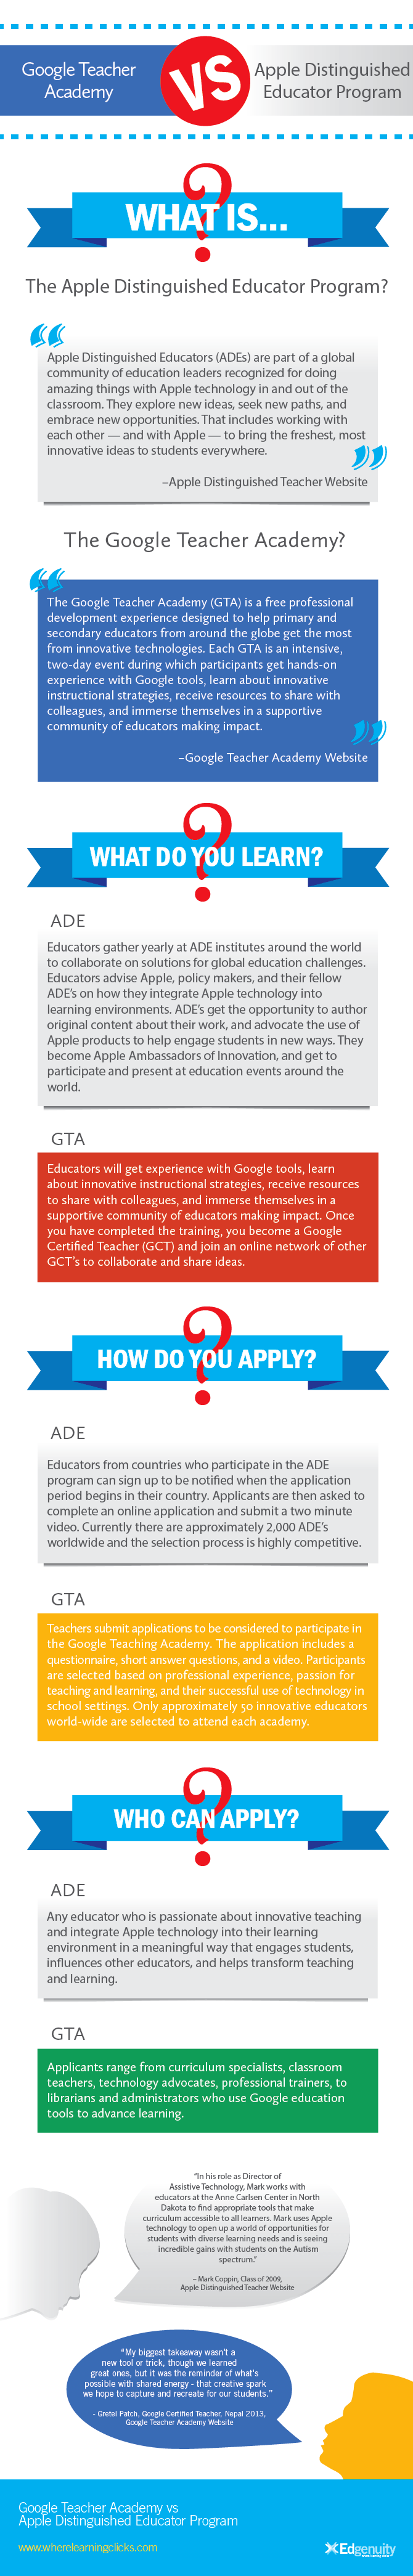 Google Teacher Academy Vs Apple Distinguished Educator Program